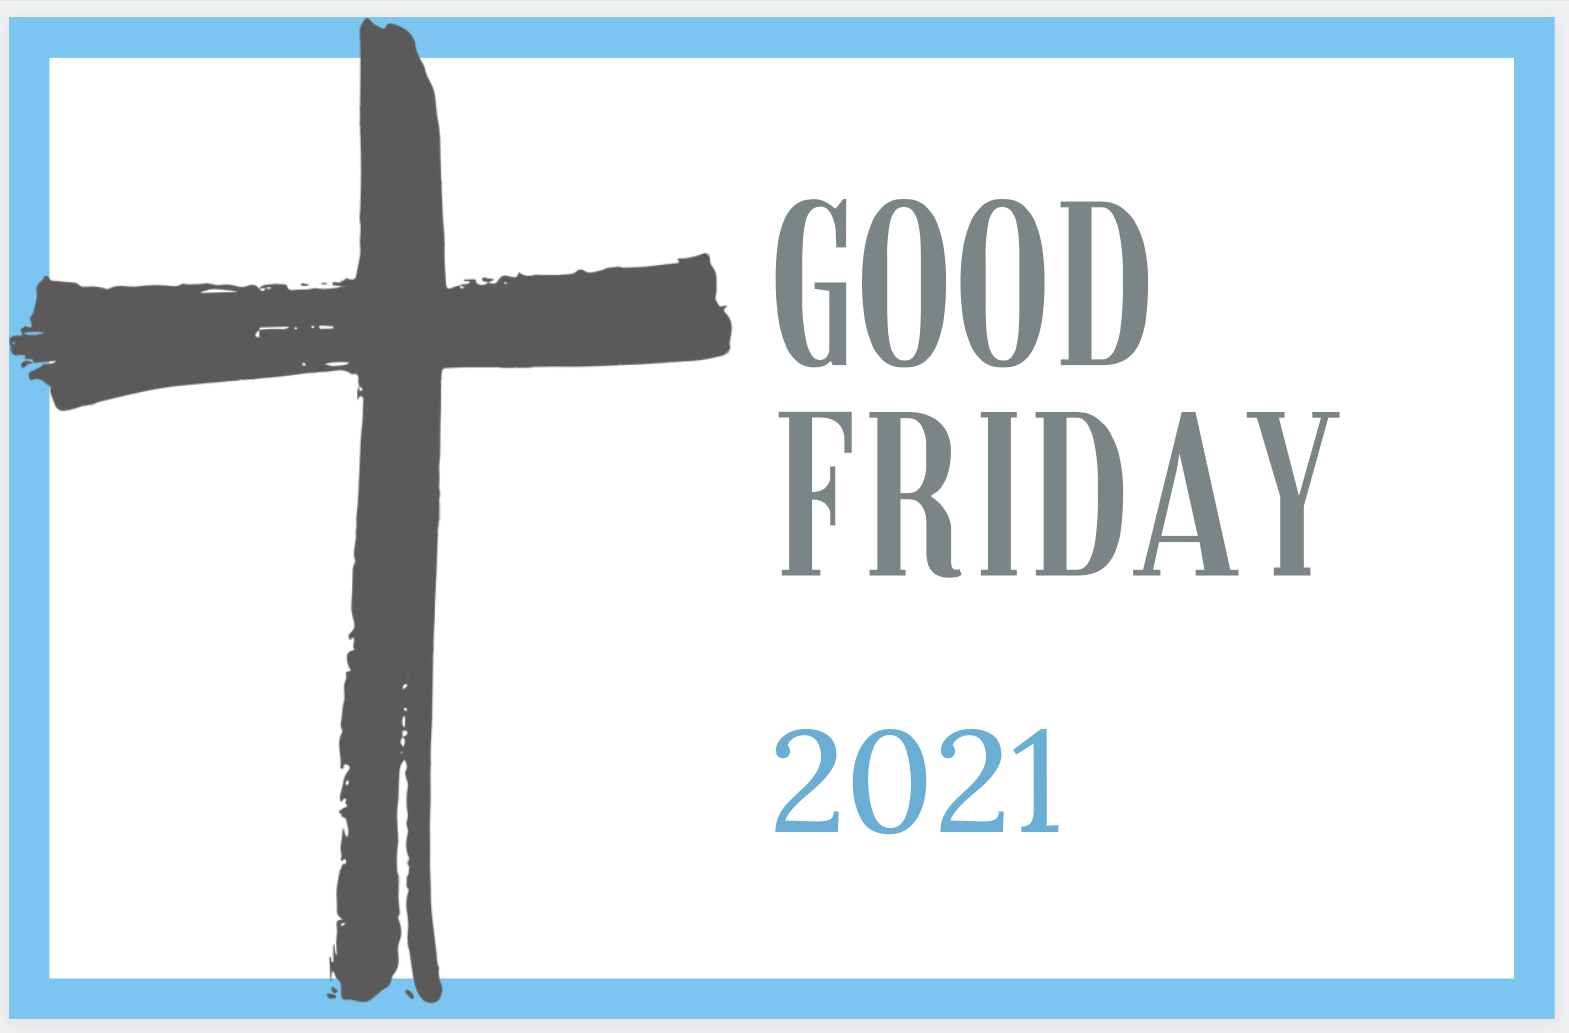 Good Friday - website image